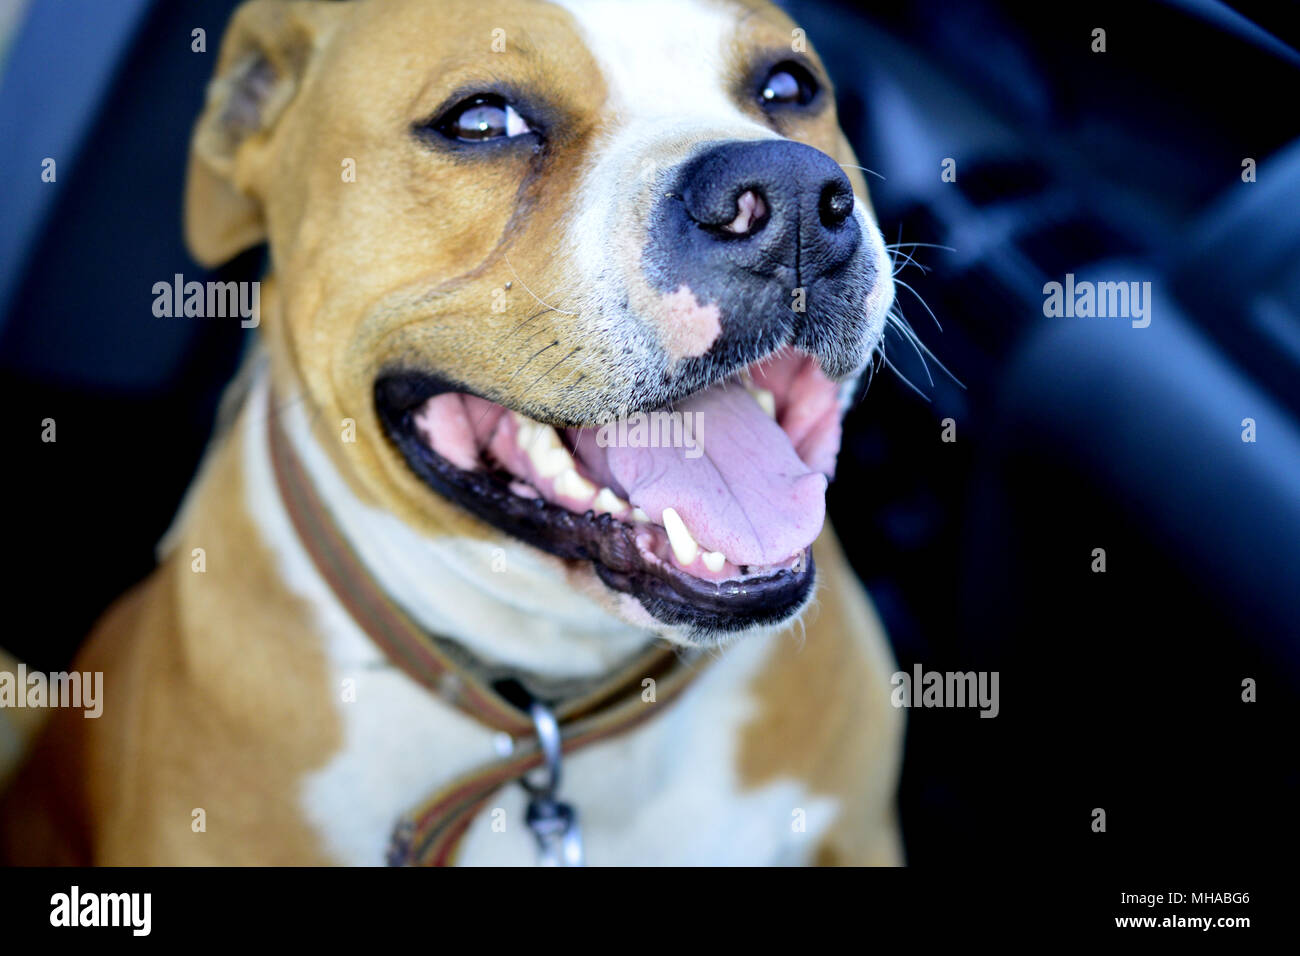 american staffordshire terrier dog portrait qith open mouth - Stock Image